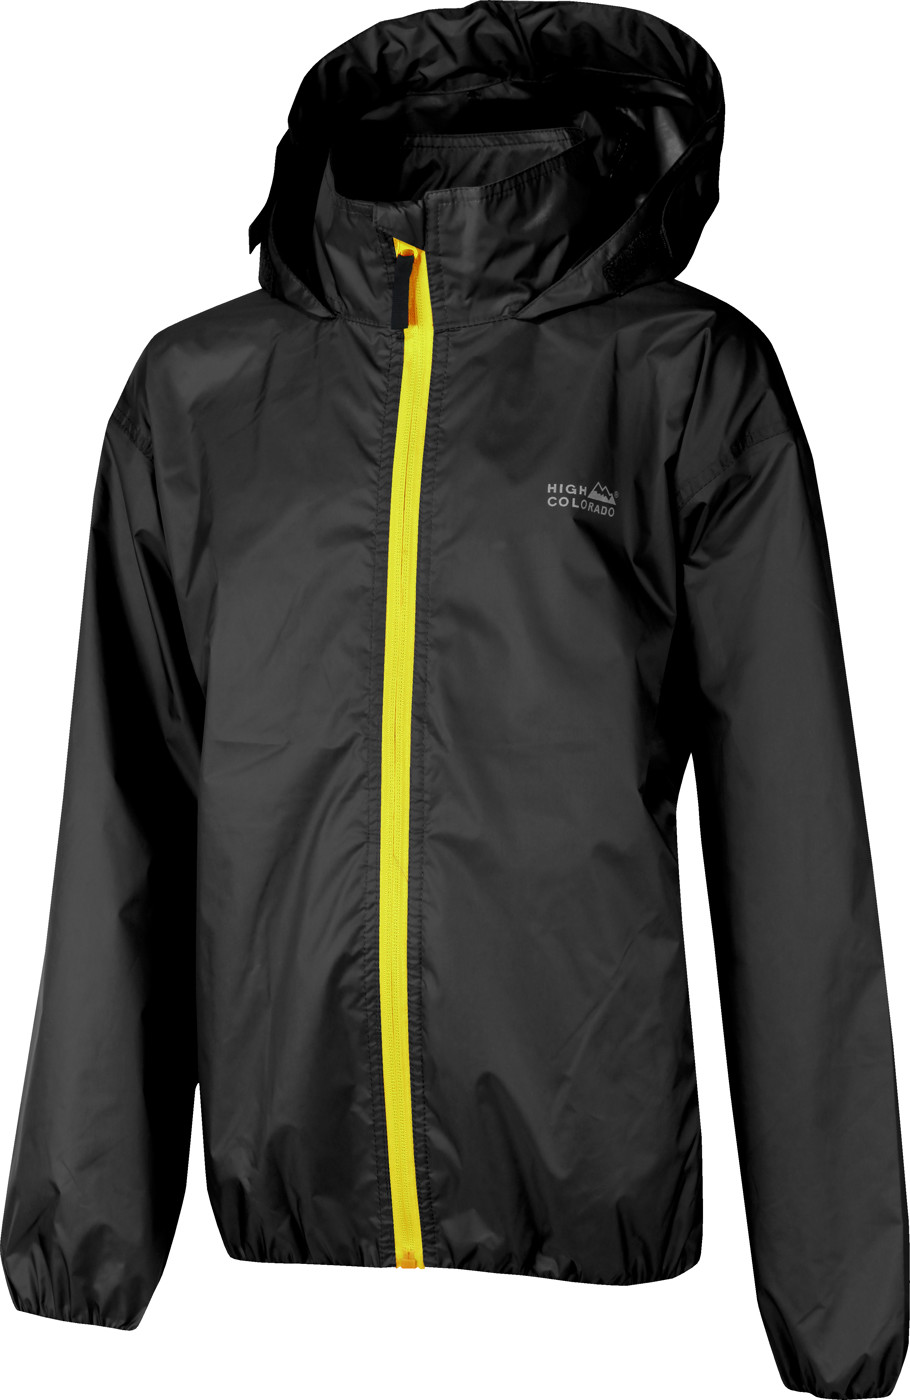 HIGH COLORADO  rain jacket CANNES-K - Kinder